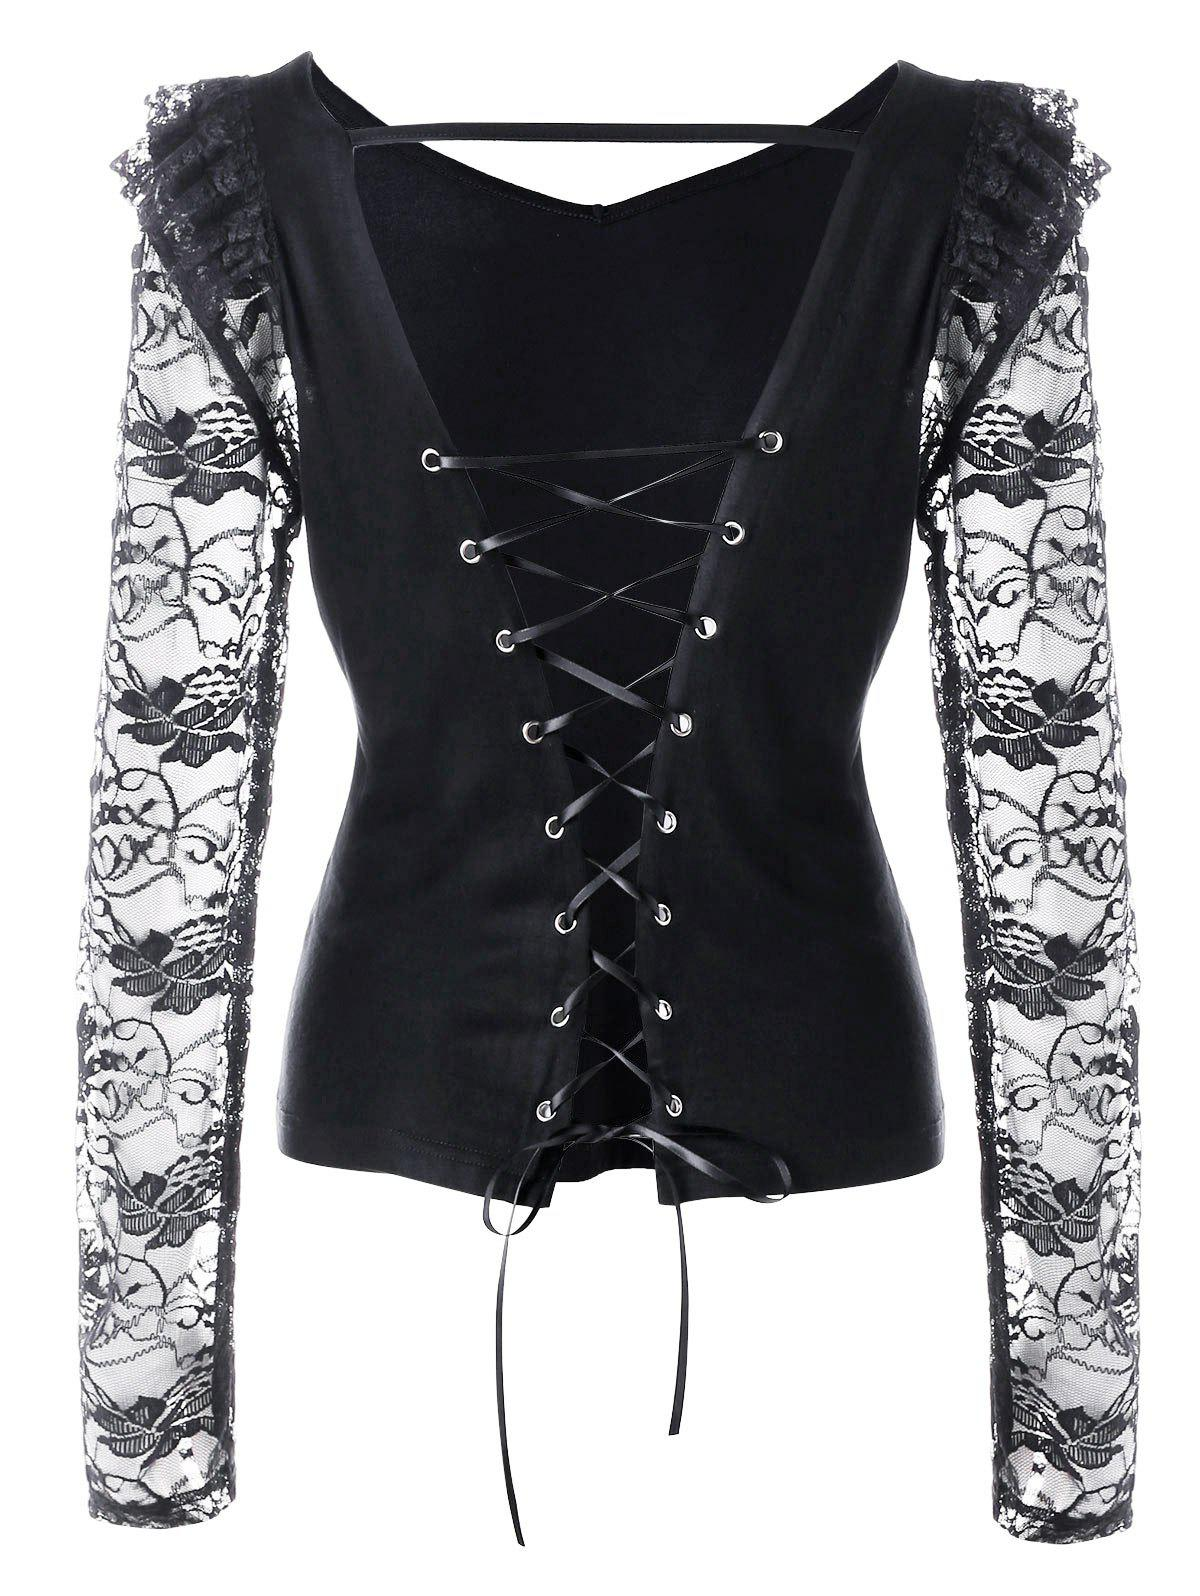 Shops Lace Panel Open Back Lace Up Top